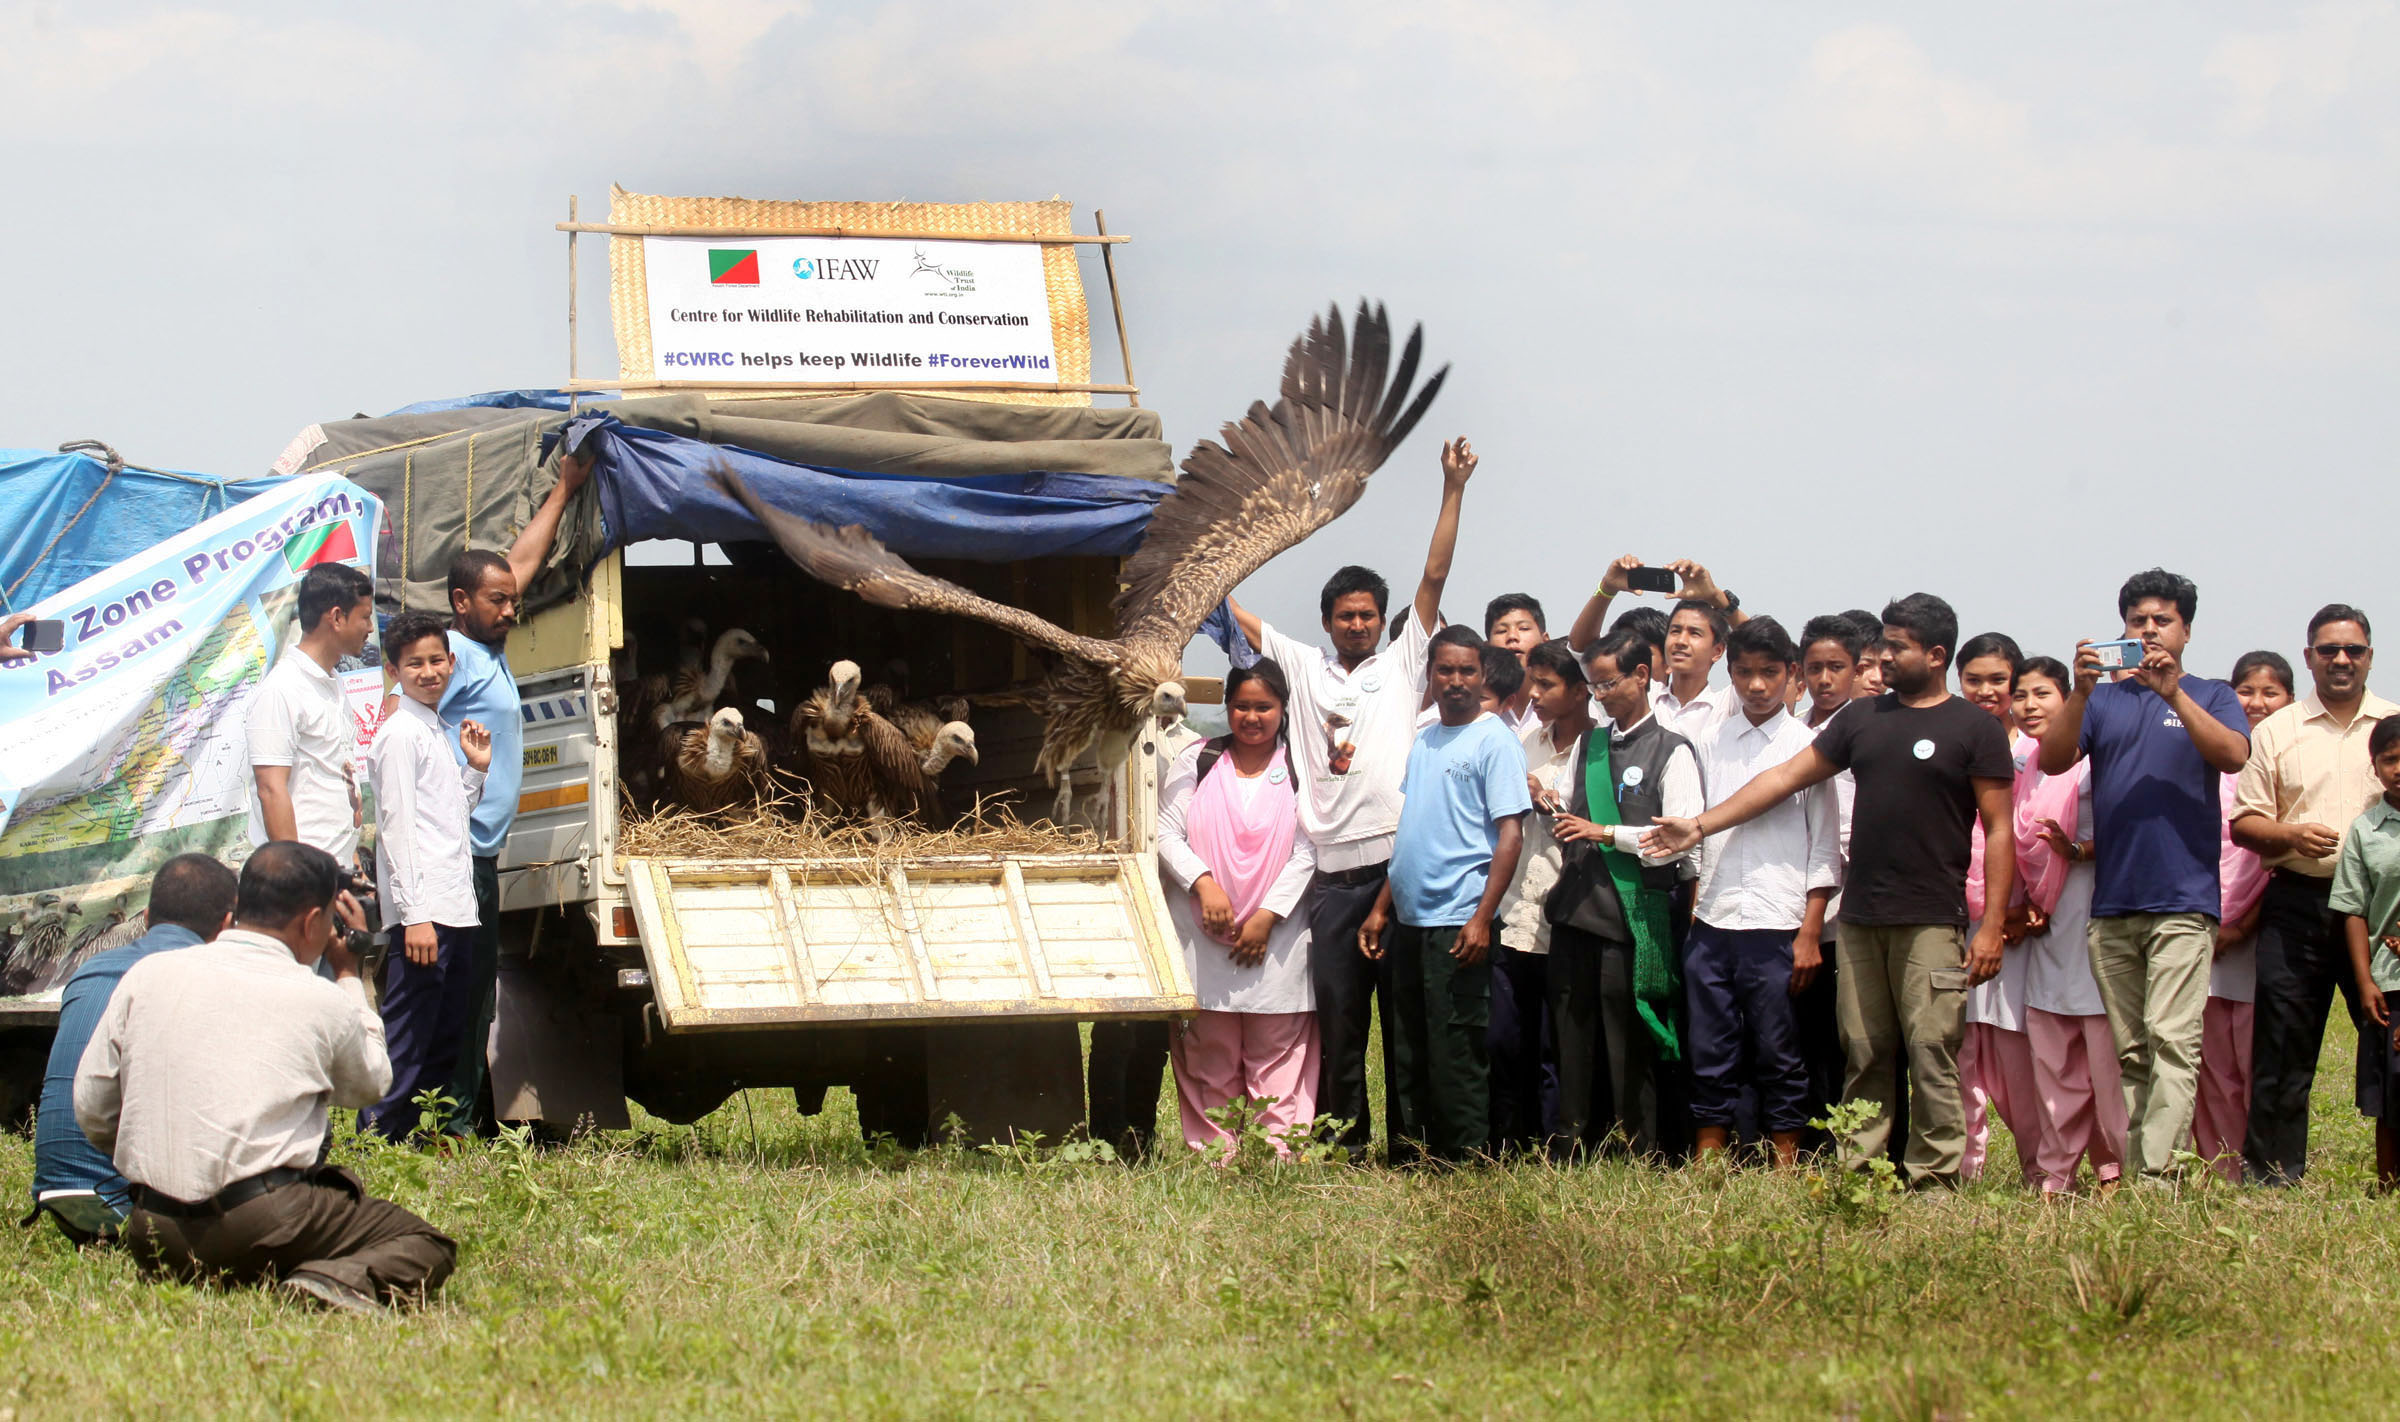 Over 30 vultures were treated for poisoning and released back into the wild at Bargaon Nalanipathar in Sivsagar district of Assam on April 9, 2019. Photo: Subhamoy Bhattacharjee/WTI-IFAW